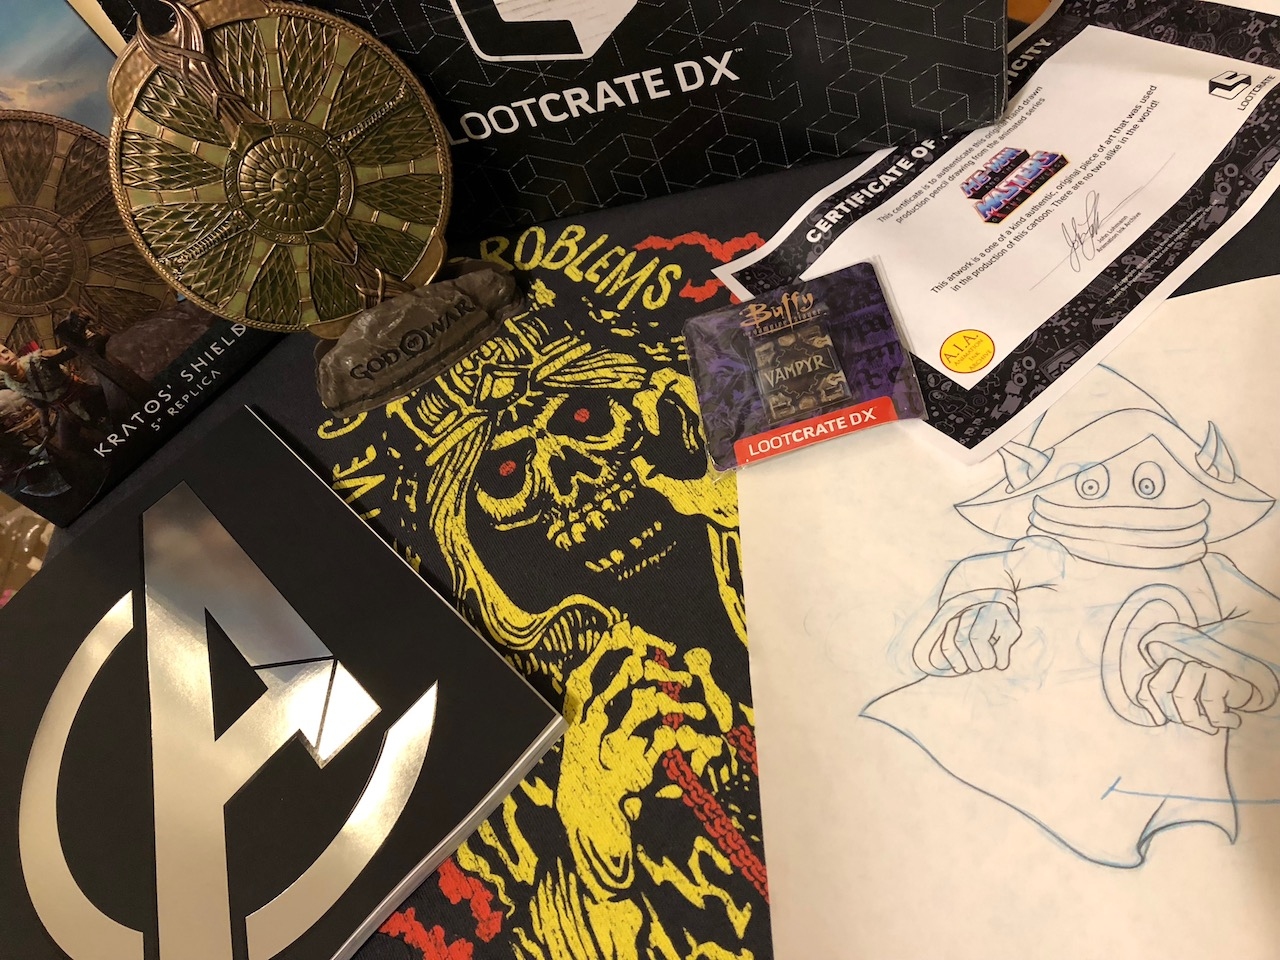 Unboxing/Review: Loot Crate DX 'Artifacts' April 2018